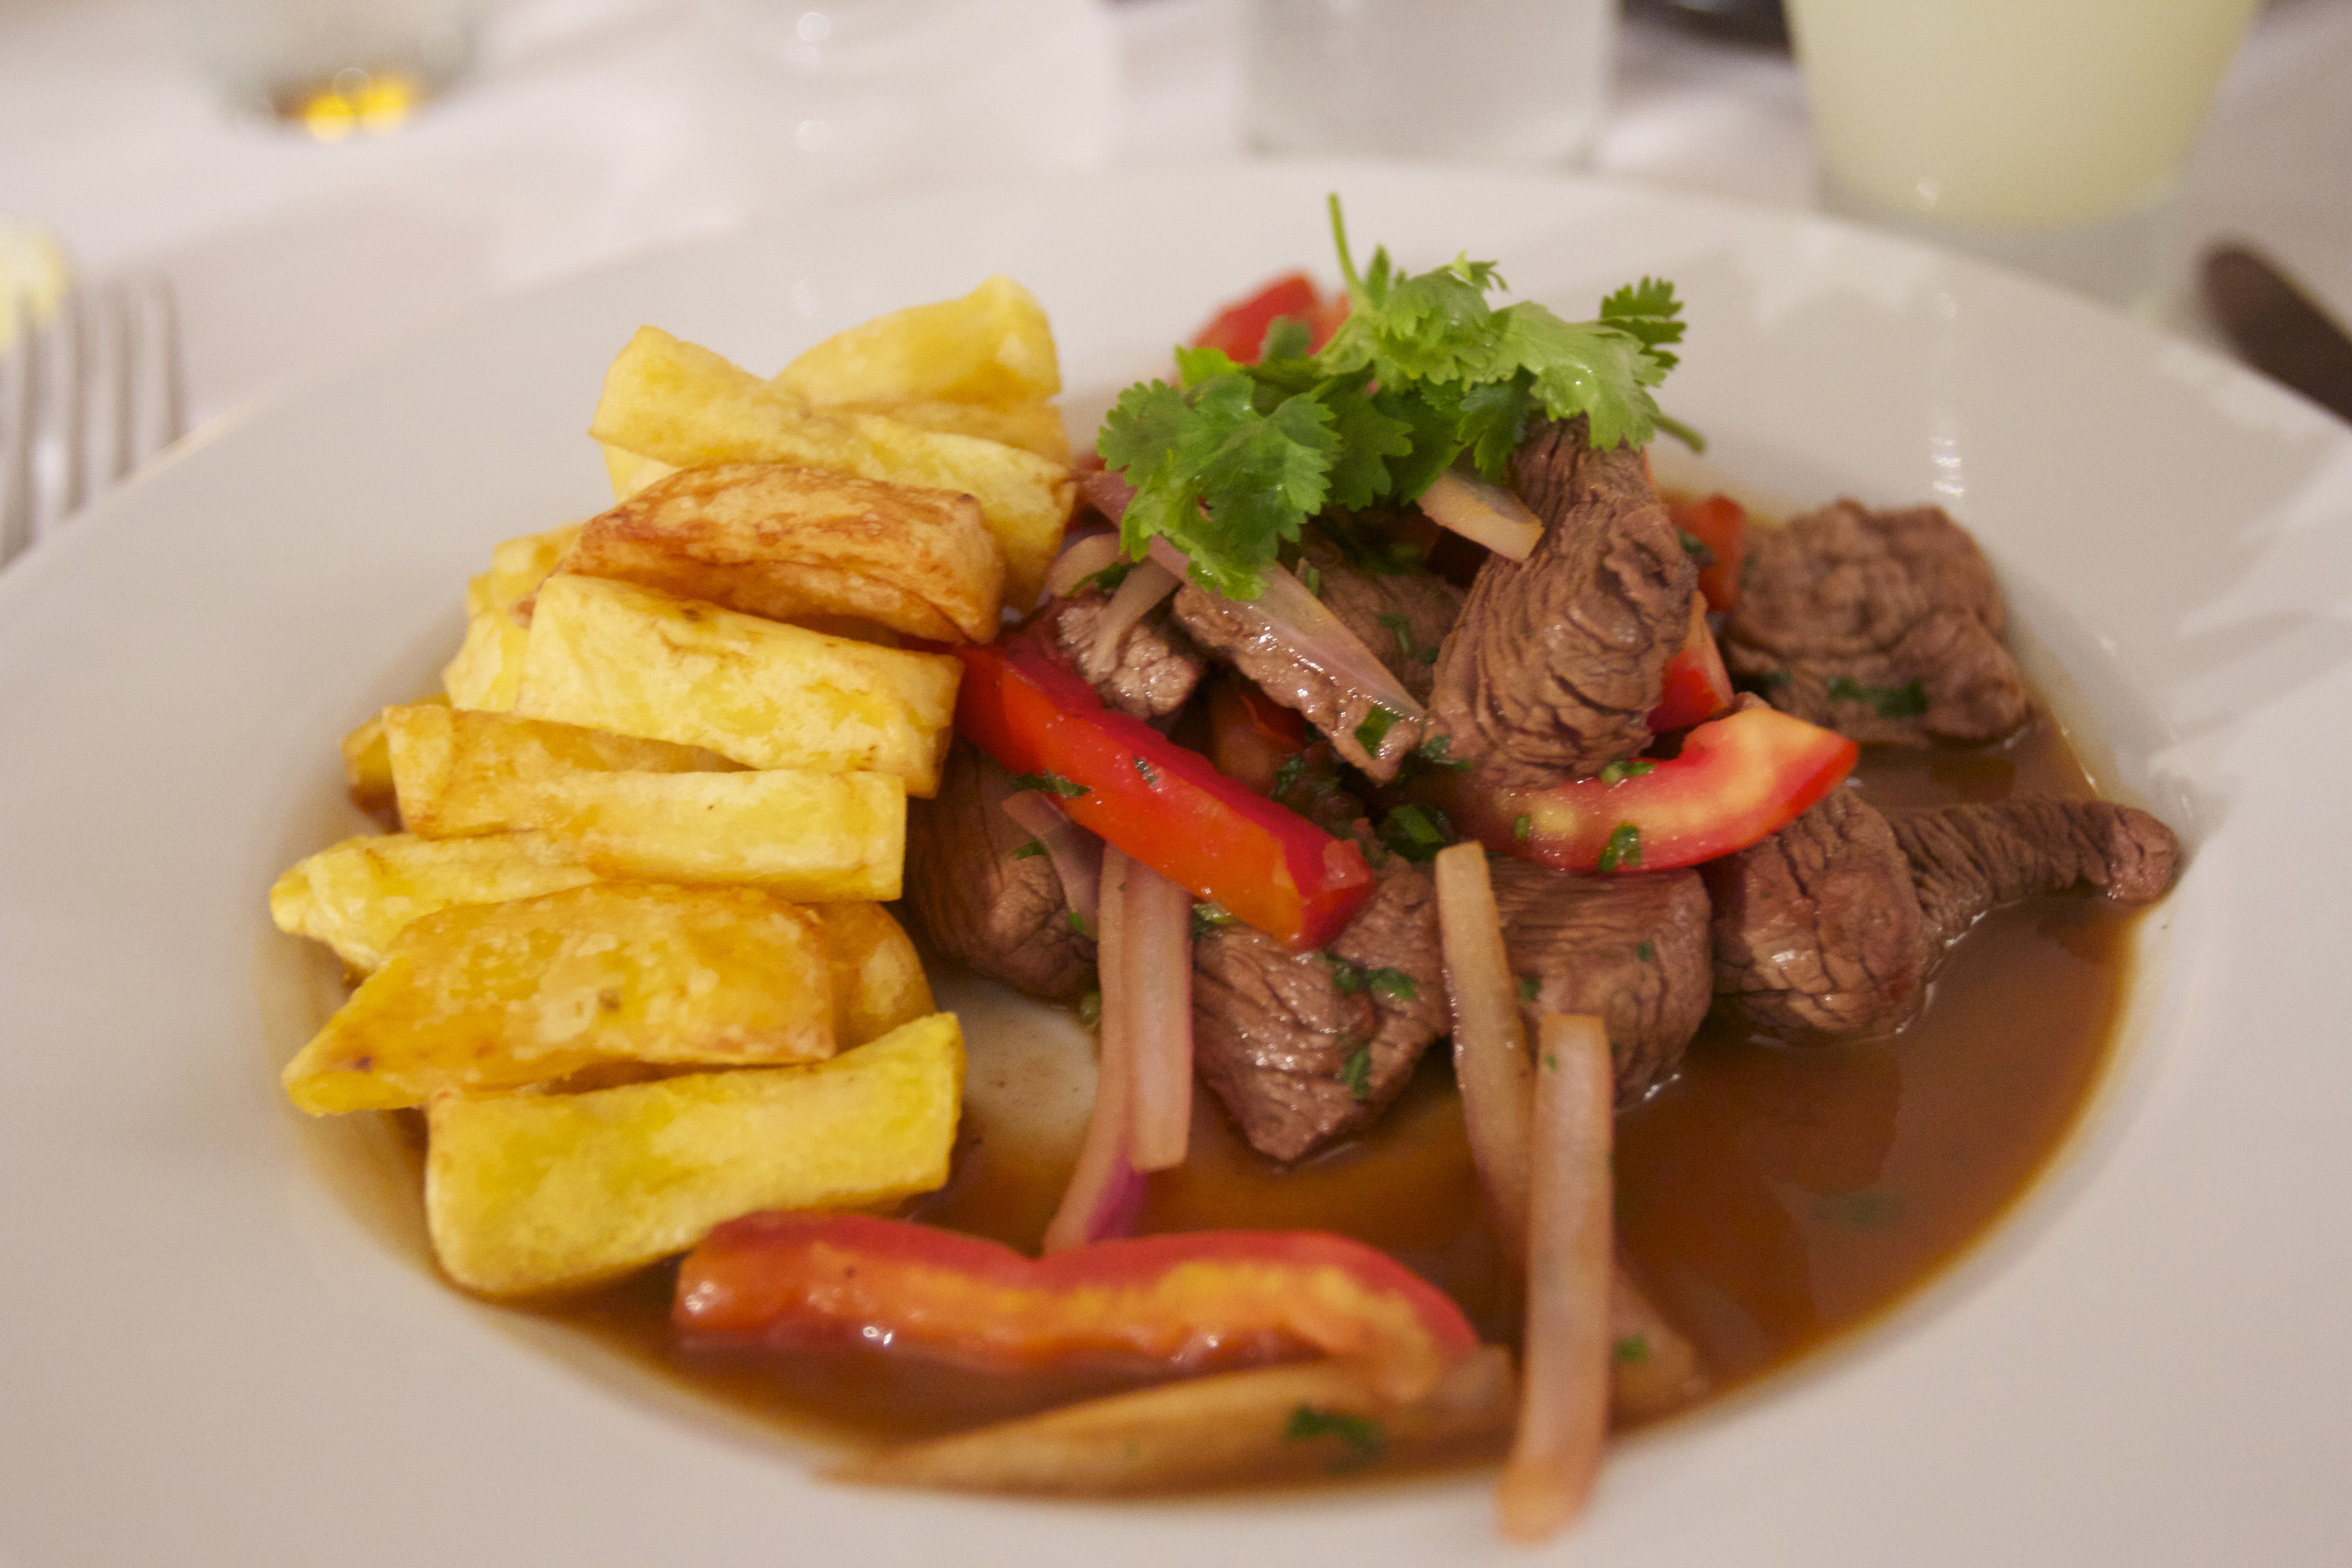 8 Foods That Show How Latin America and Asia Have Influenced Each Other's Cuisines